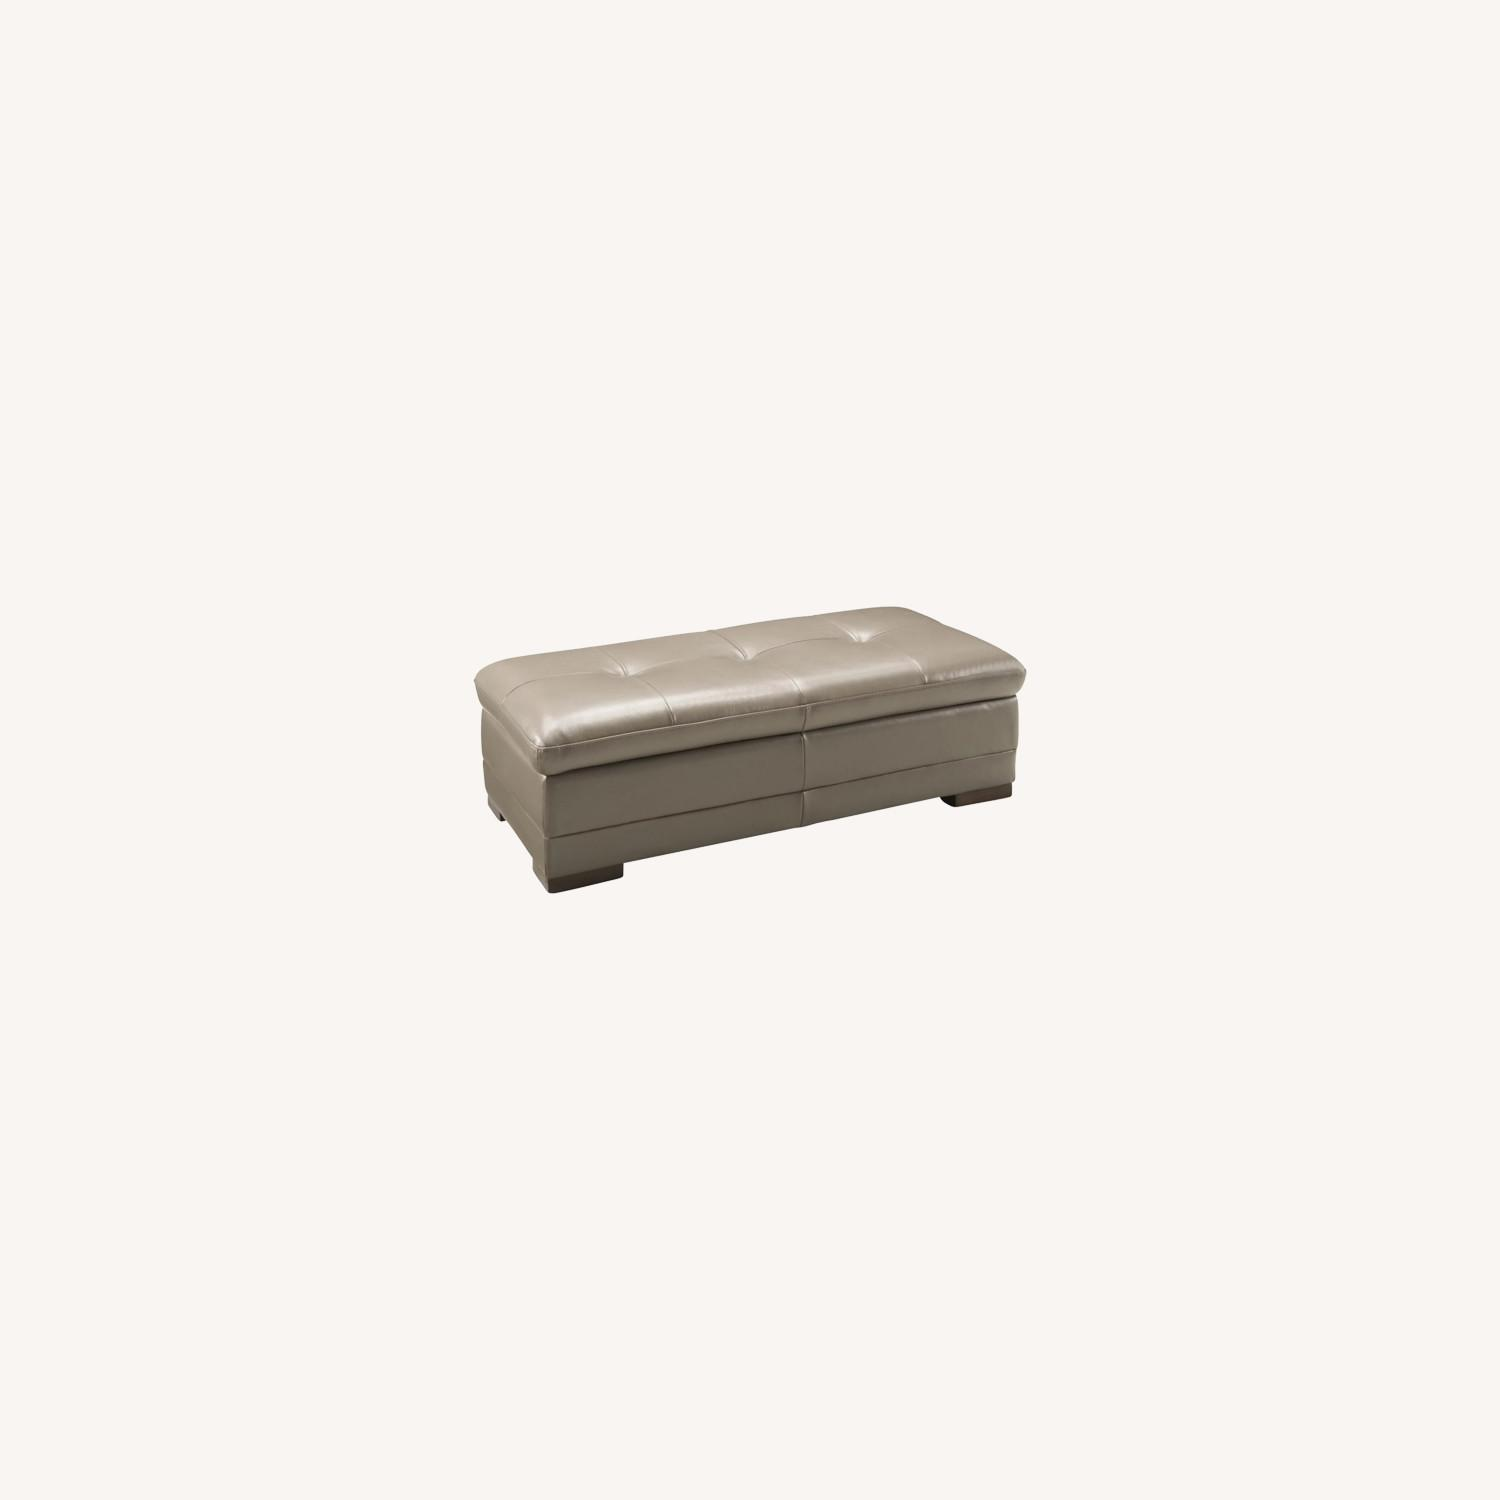 Raymour & Flanigan Taupe Leather Cocktail Ottoman - image-0